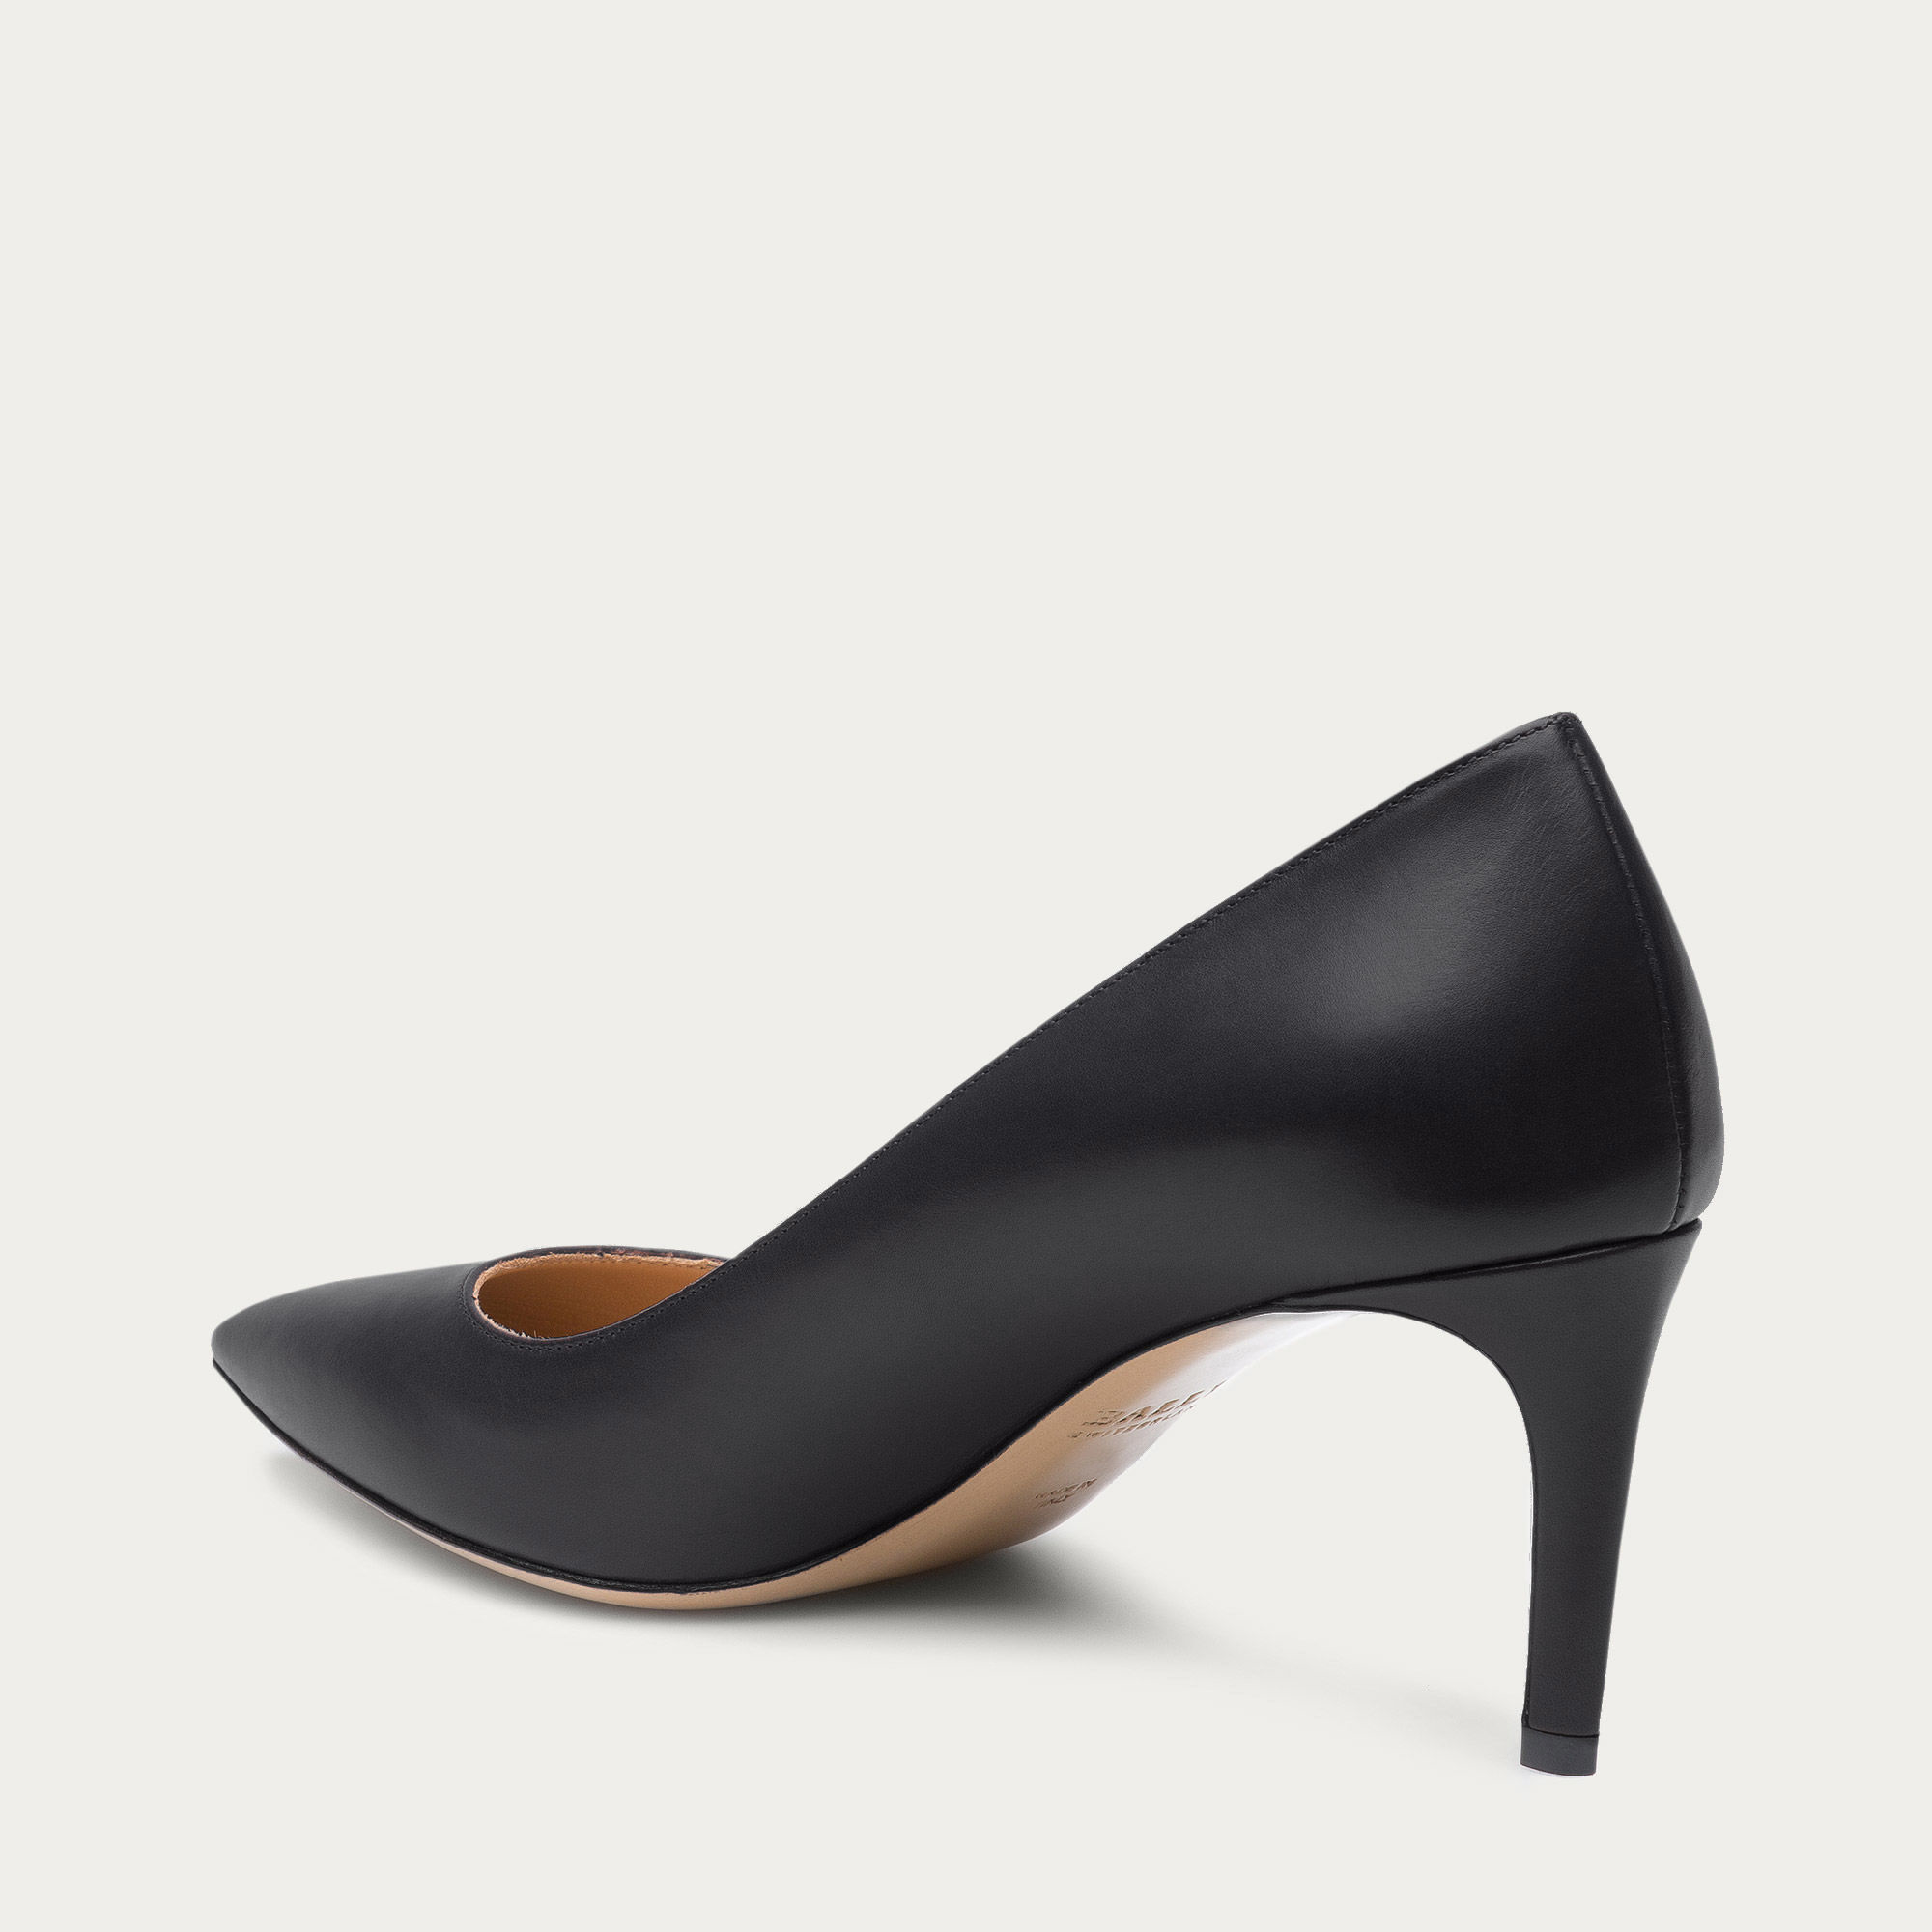 Bally Elaise Women's Leather Pump In Black in Black